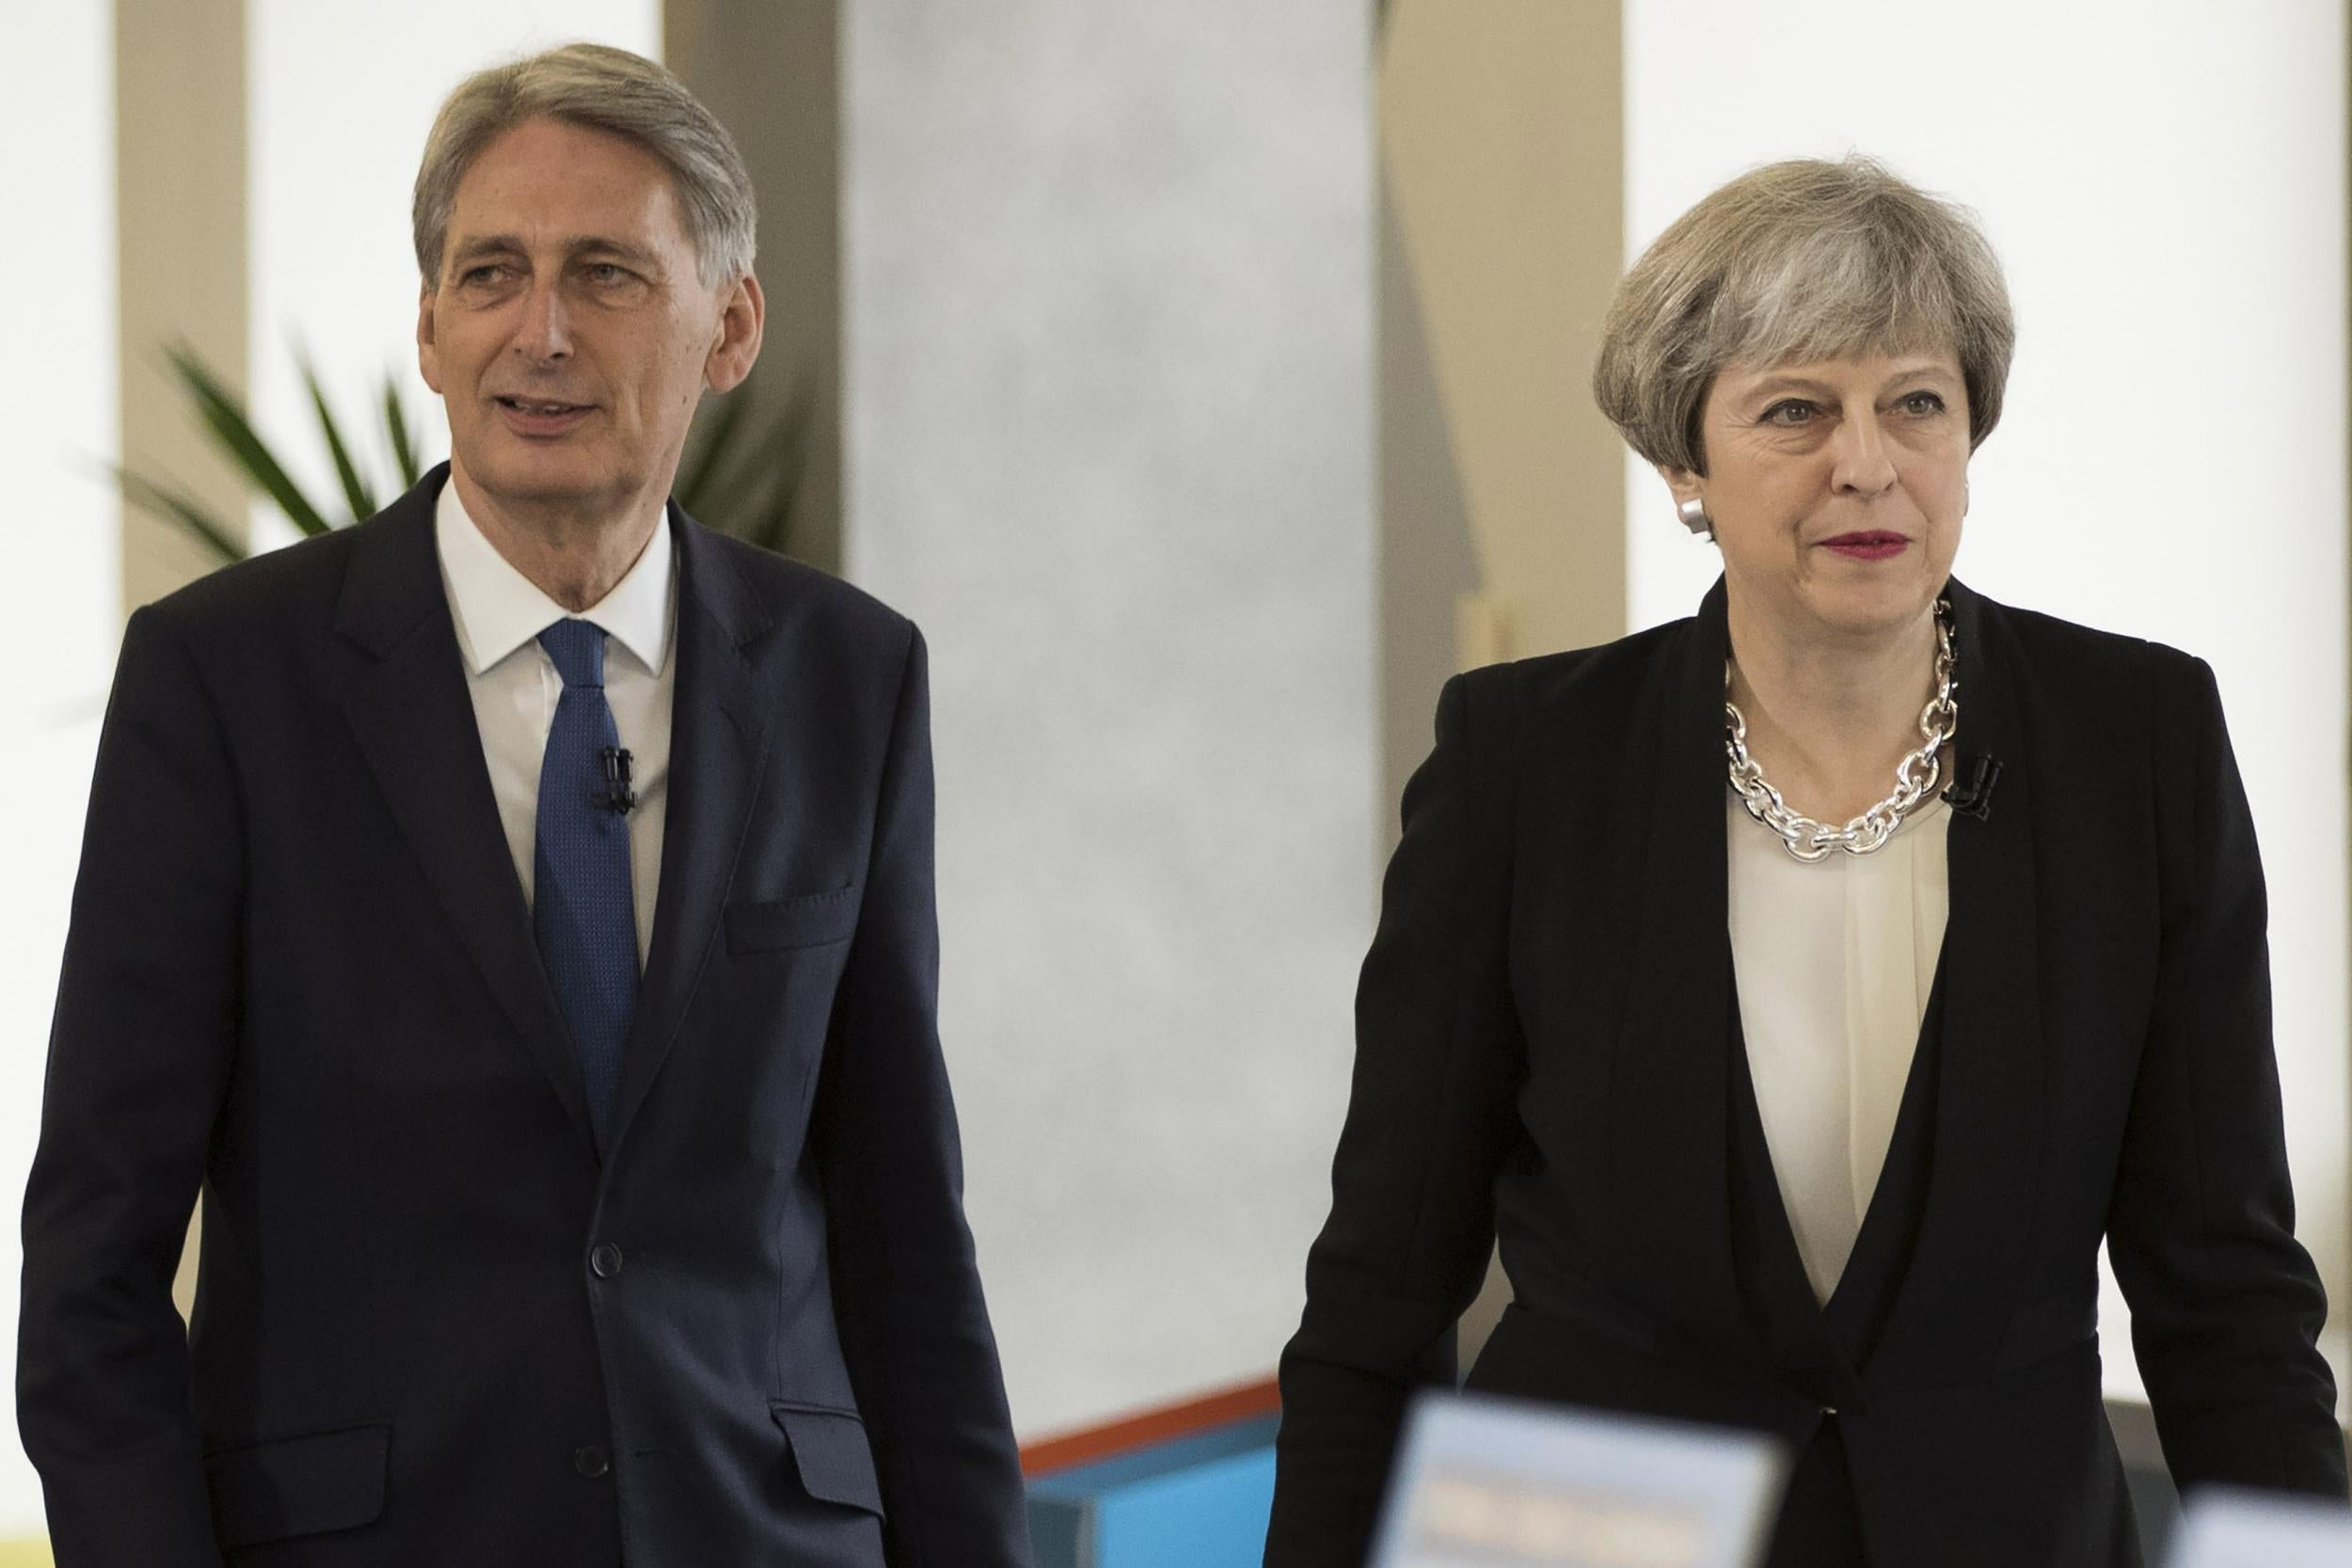 ca53010e9e0c1 ... low cost new york mets star wars hat zionsville in theresa may clashes  with philip hammond